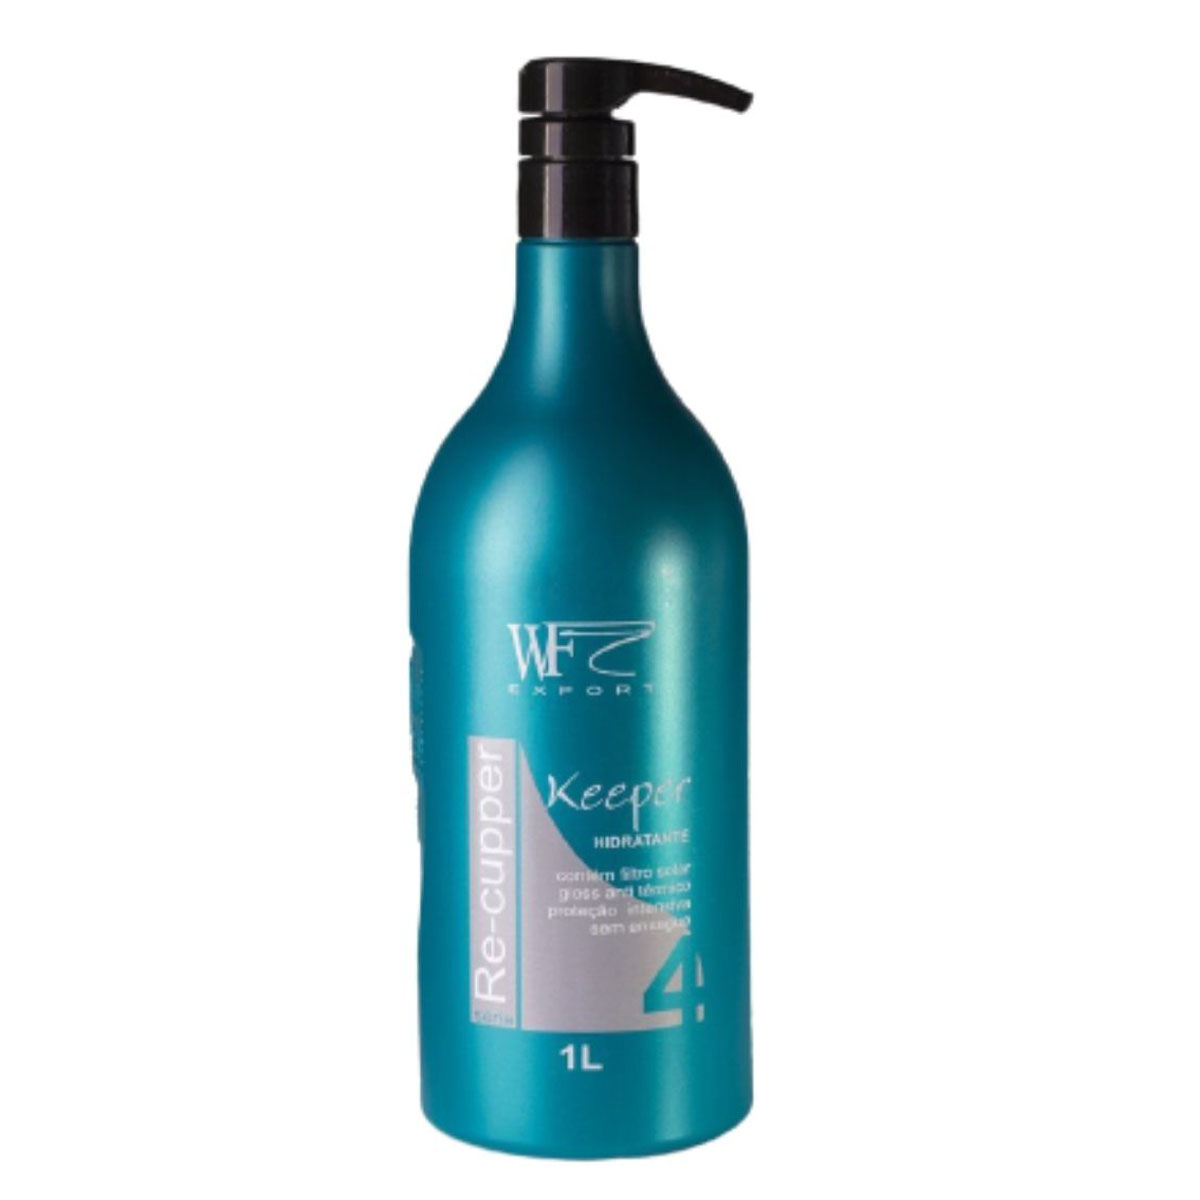 RE-CUPPER - LEAVE-IN PROFISSIONAL KEEPER WF COSMETICOS 1 LT